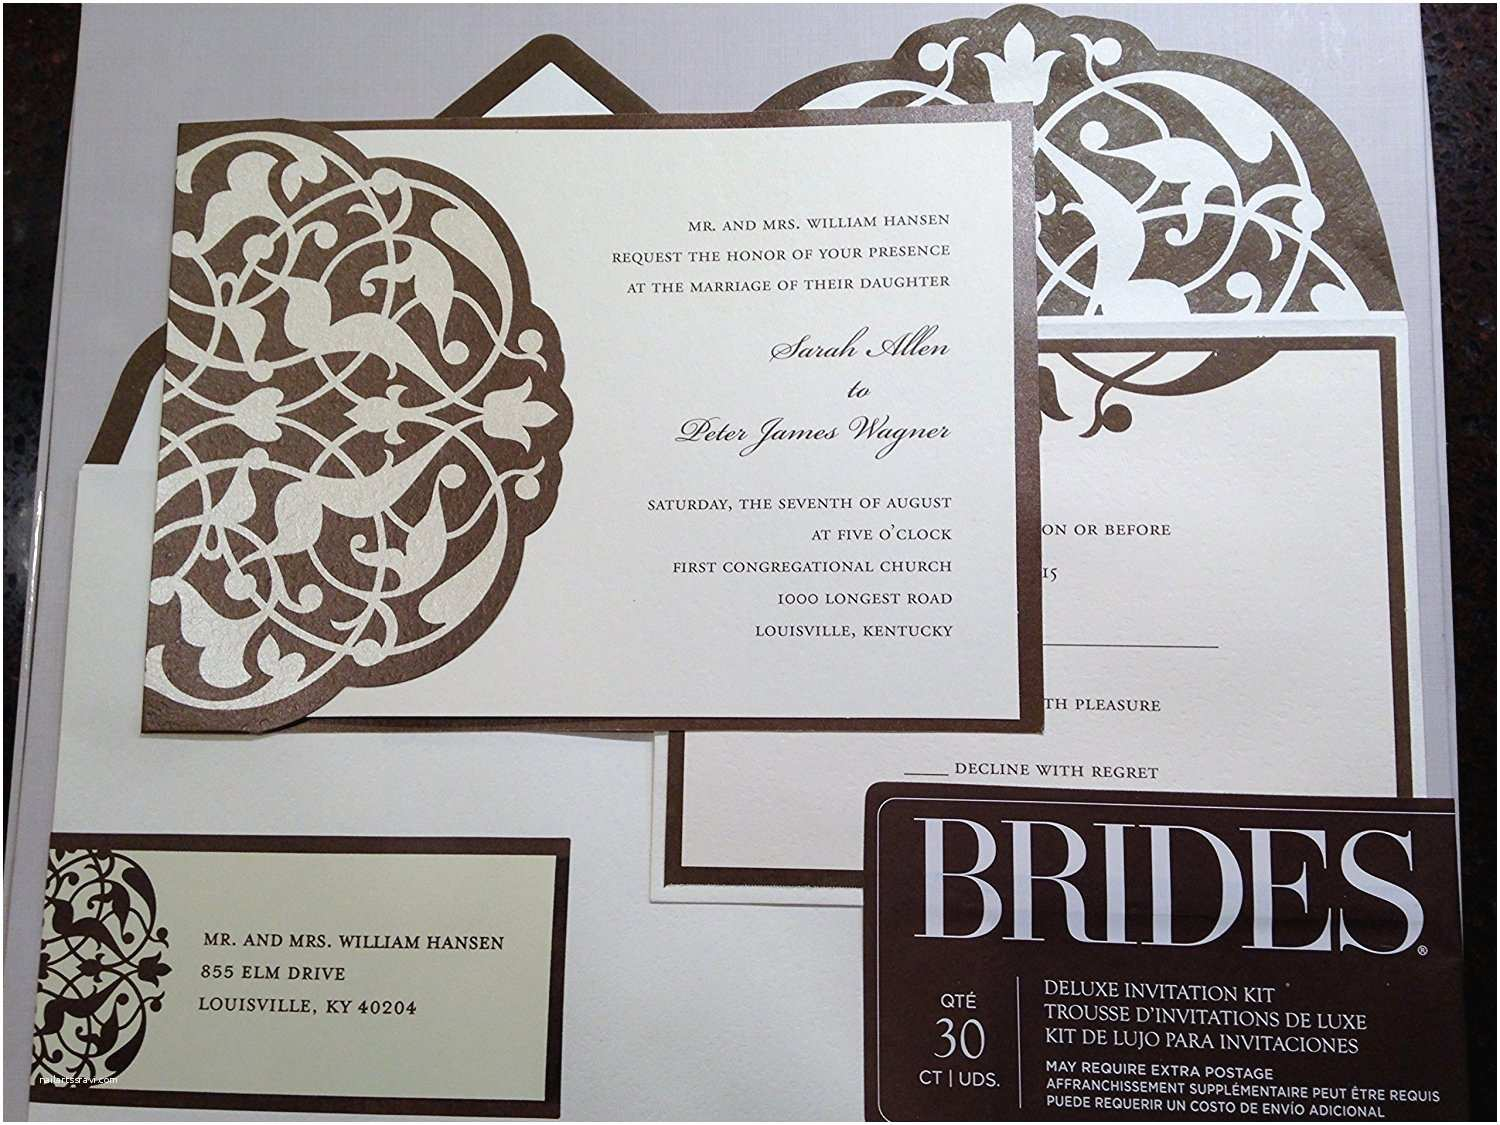 Michaels Do It Yourself Wedding Invitations Brides Diy Wedding Invitation Kit Brown Ivory Templates